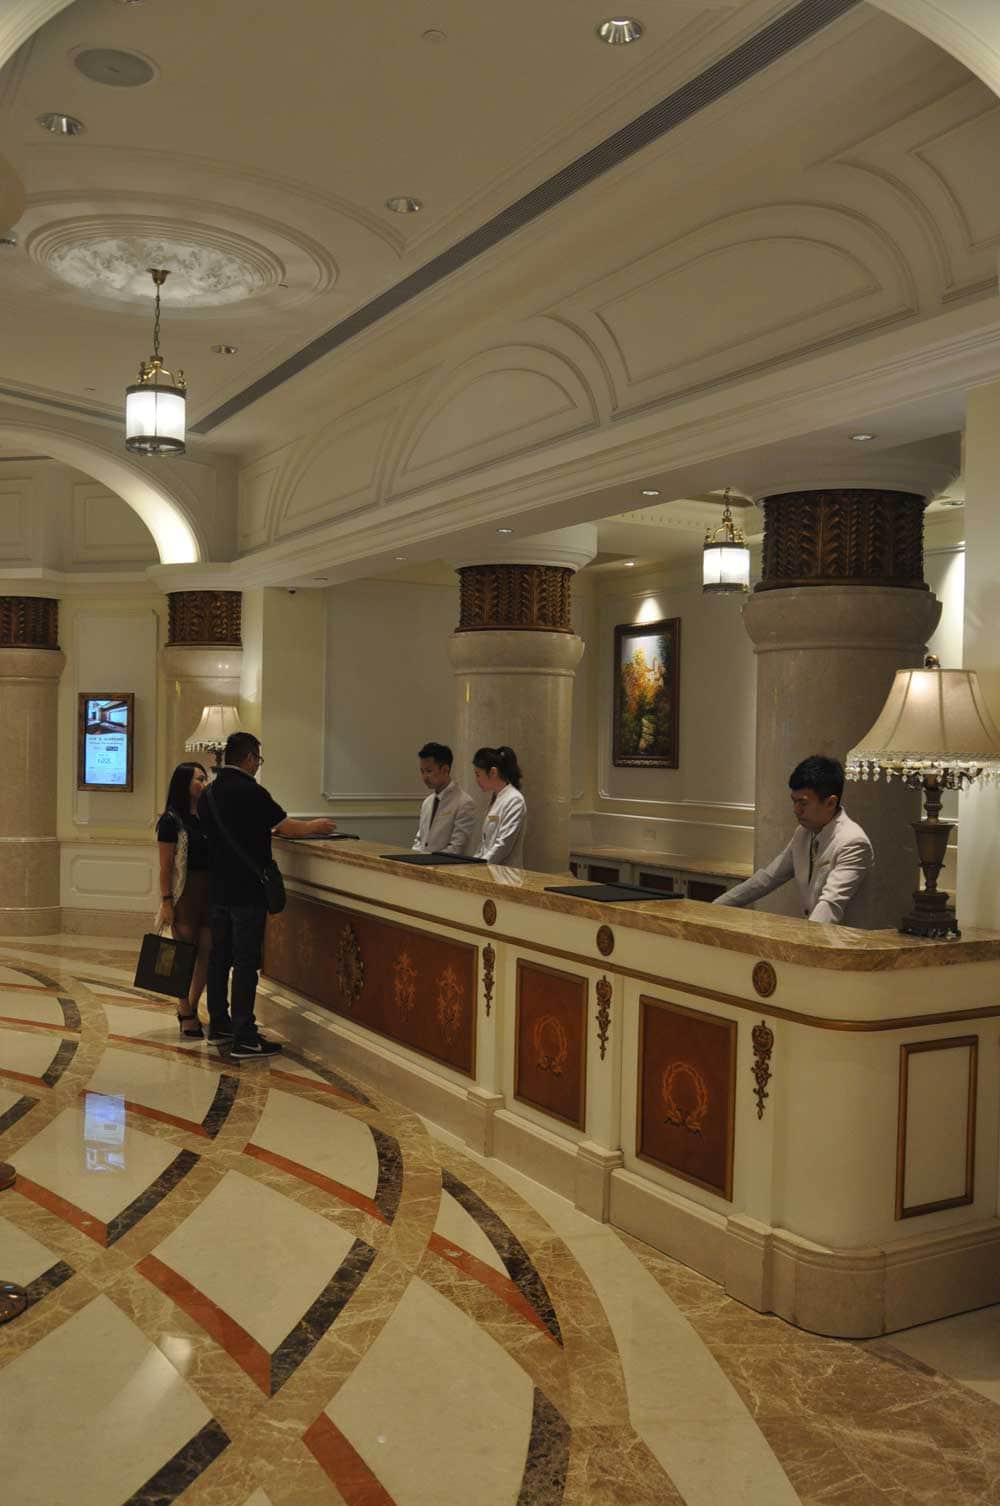 Legend Palace Hotel check in desk